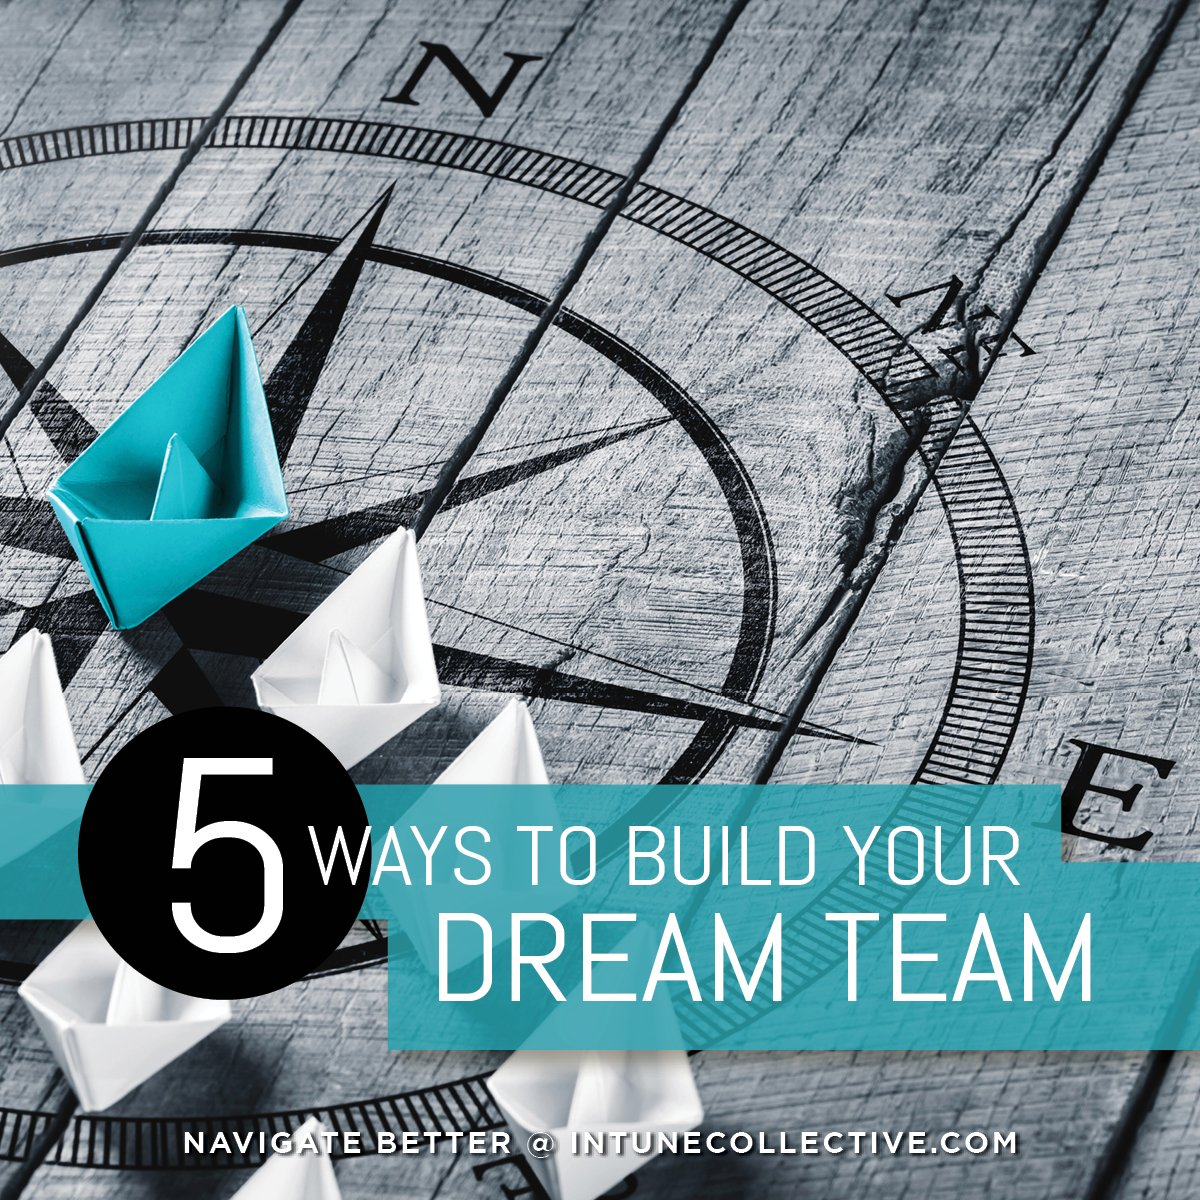 5 Key Elements to Help Build A Dream Team